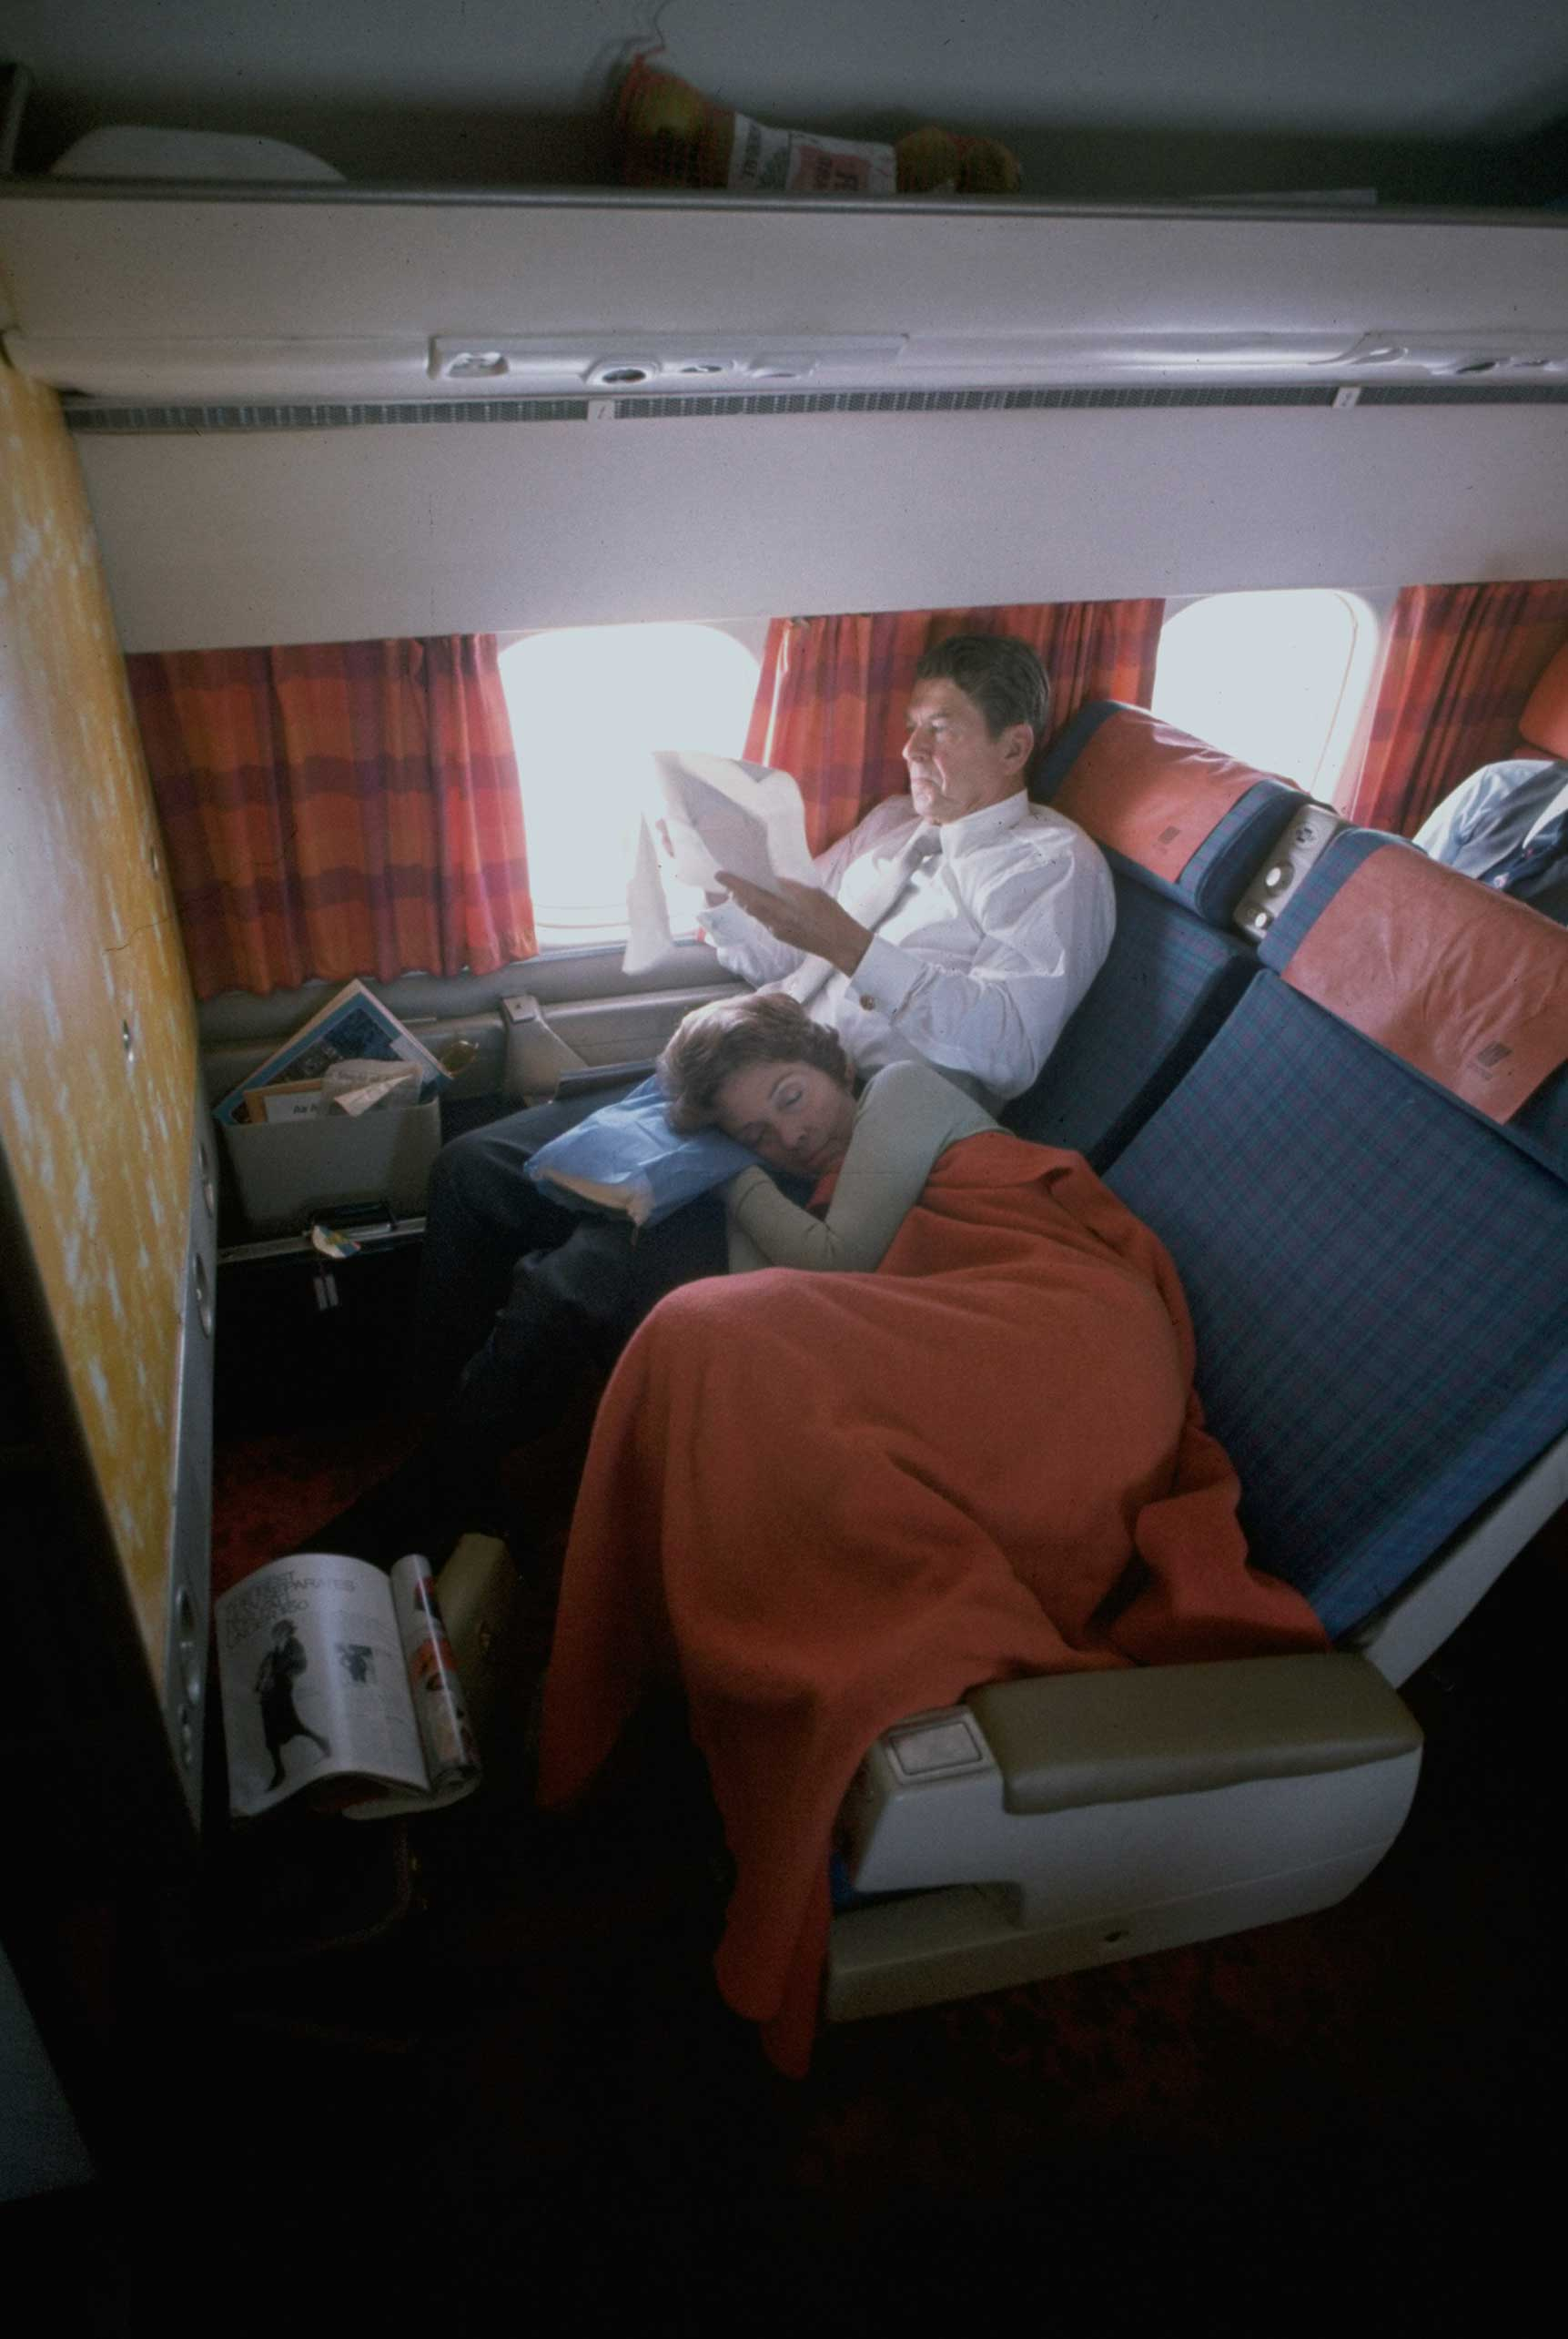 Nancy Reagan sleeping while resting her head in her husband's lap as they fly en route from West Virginia to Los Angeles while campaigning for the presidency.